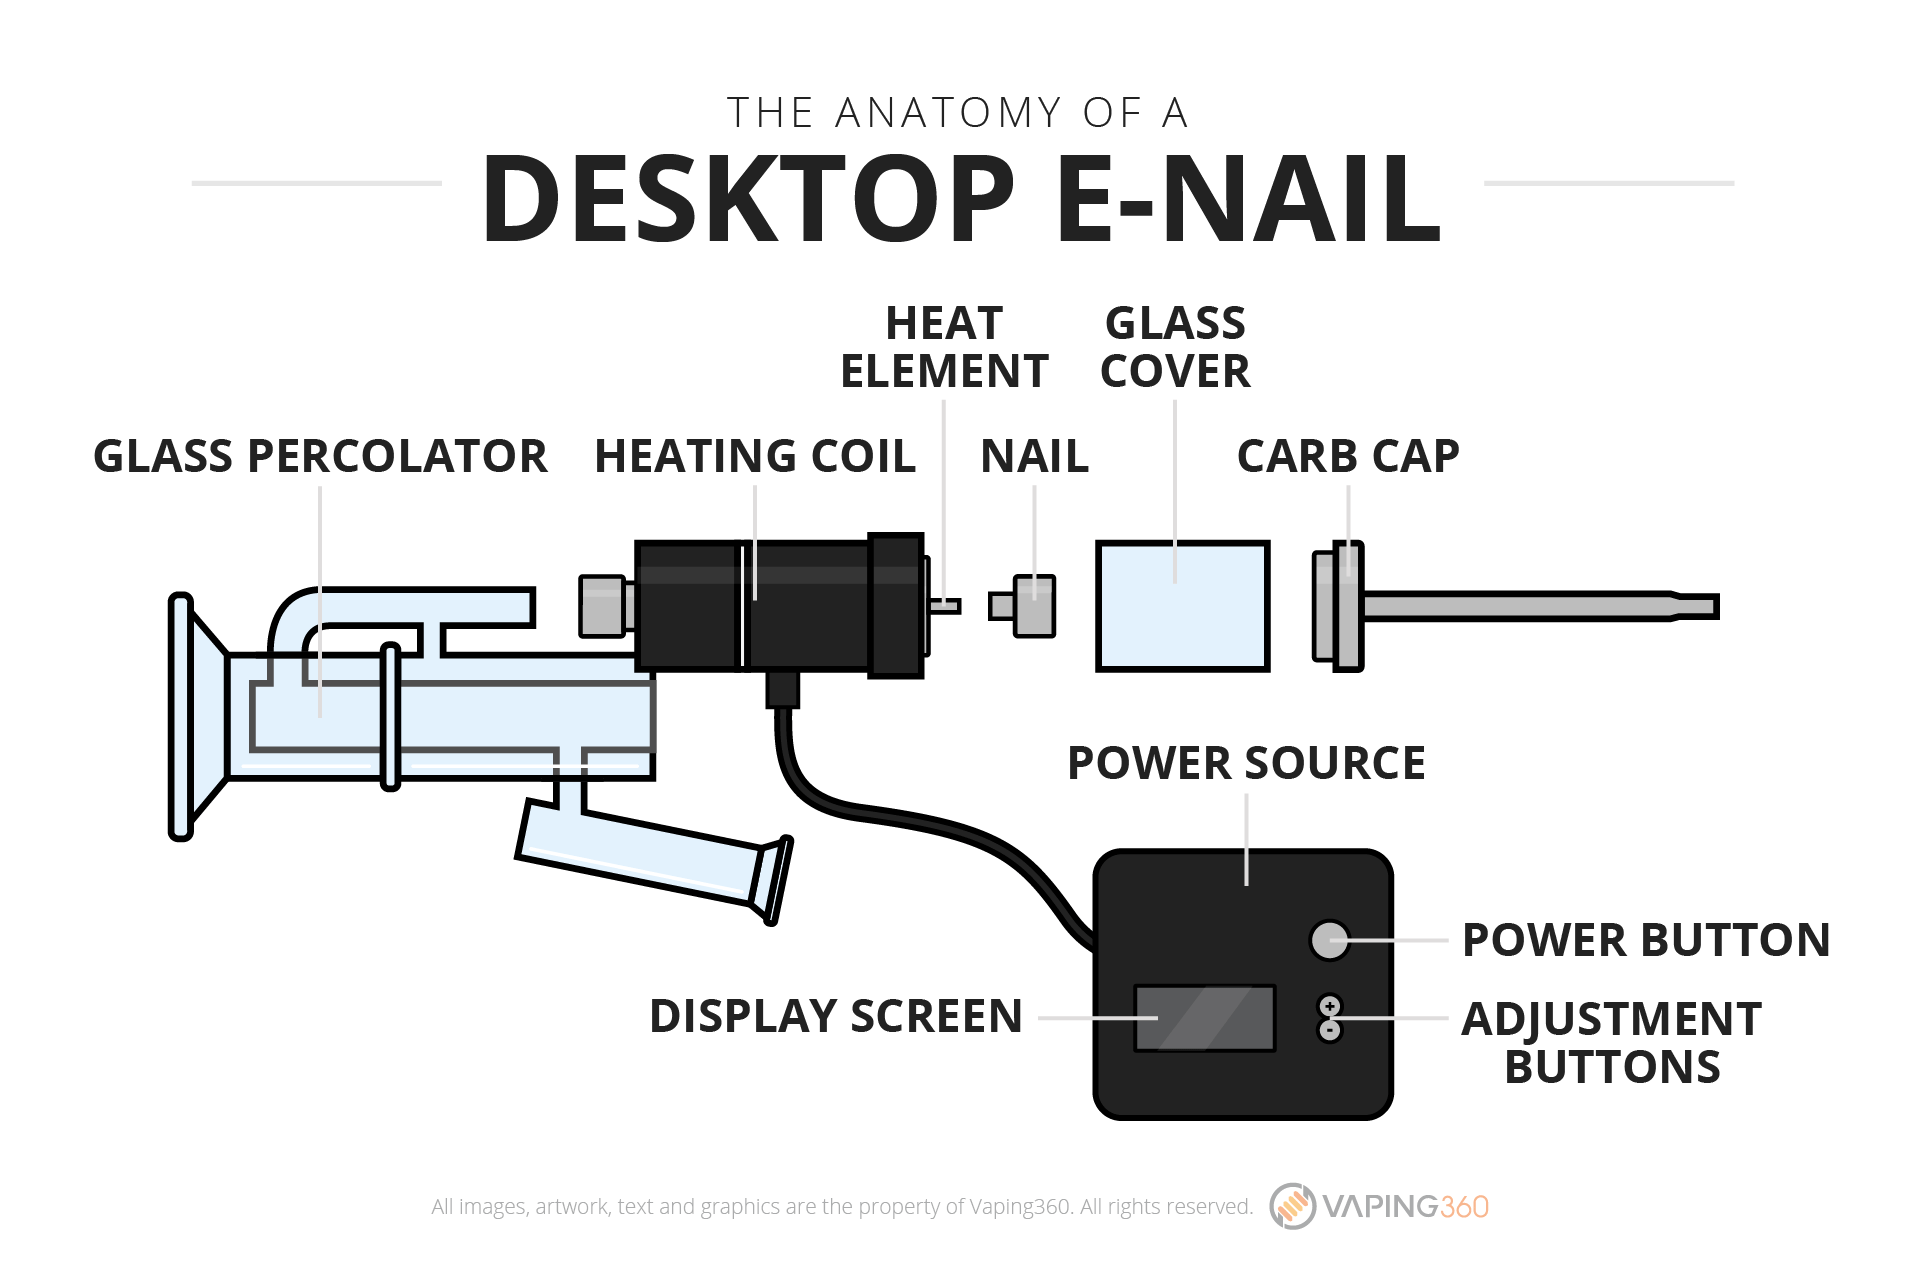 the-anatomy-of-a-desktop-e-nail